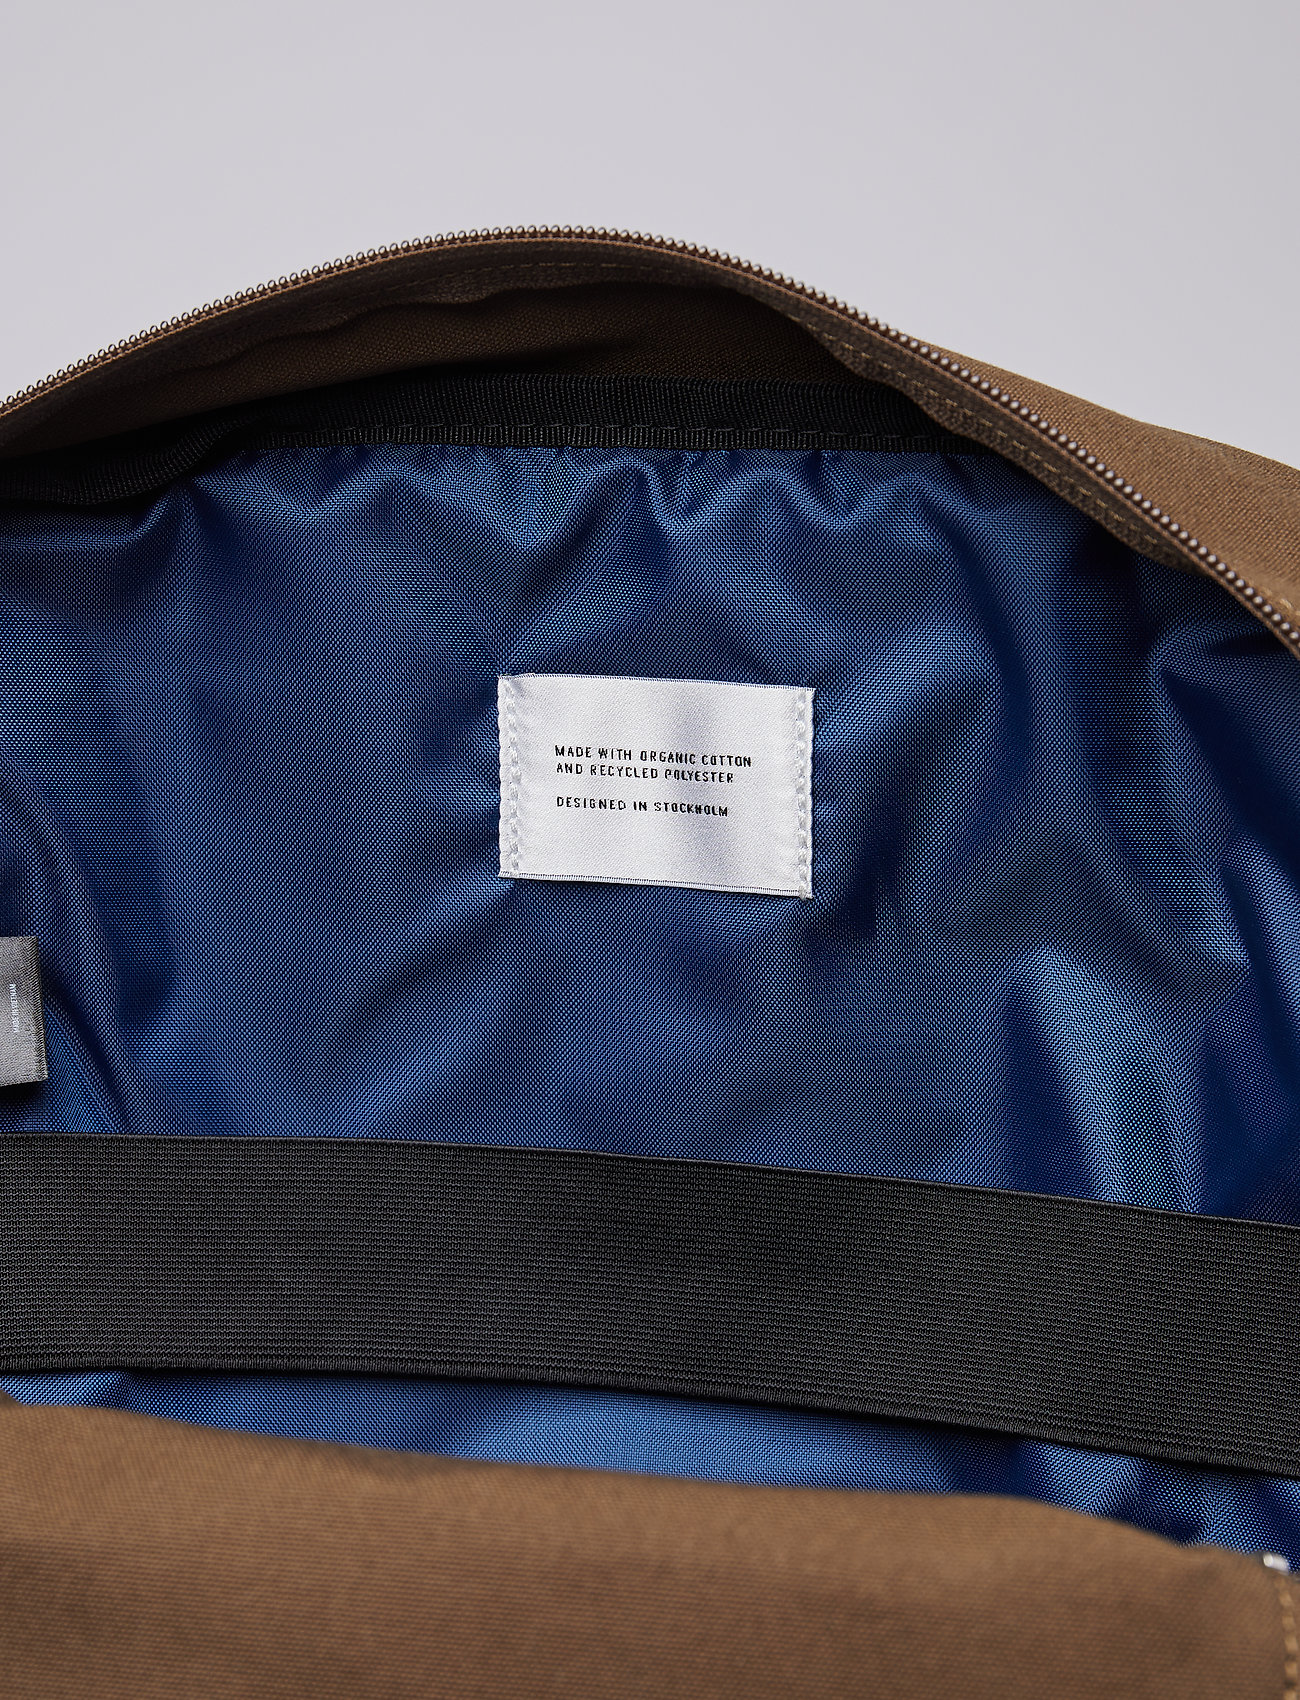 SANDQVIST - KNUT - sacs a dos - olive with navy webbing - 9